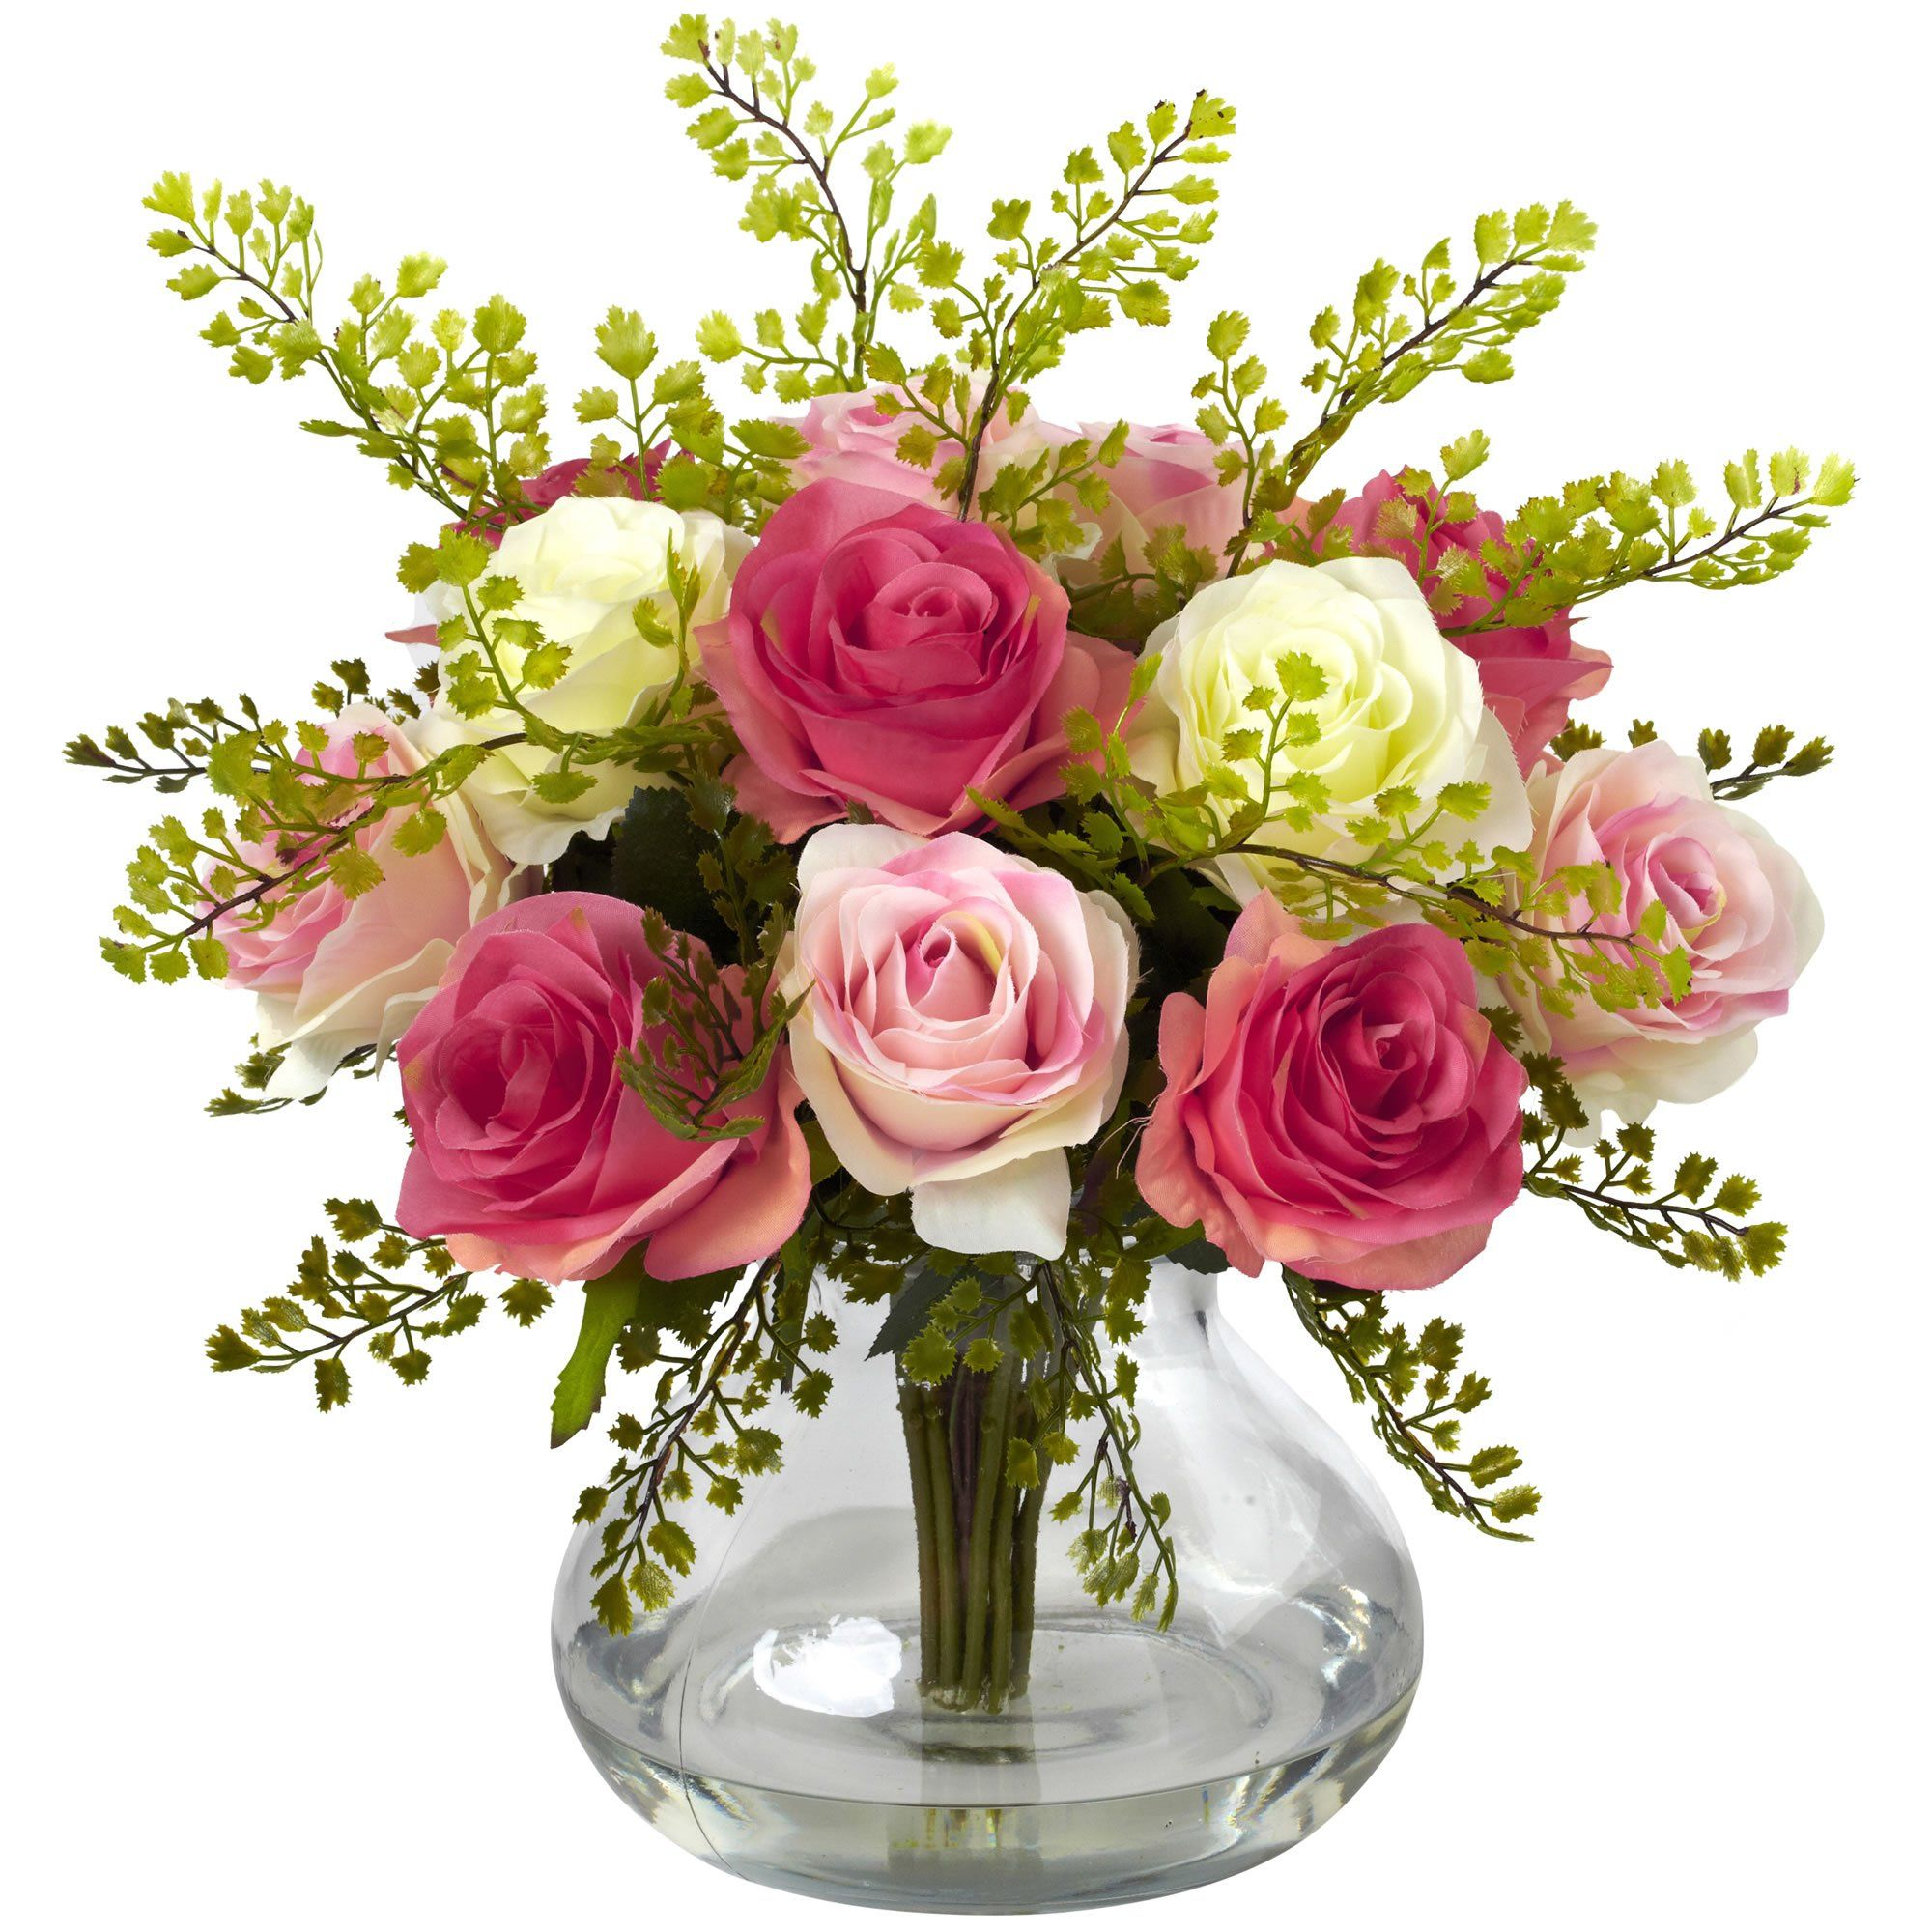 Silk Flowers Rose And Maiden Hair Arrangement With Vase Artificial